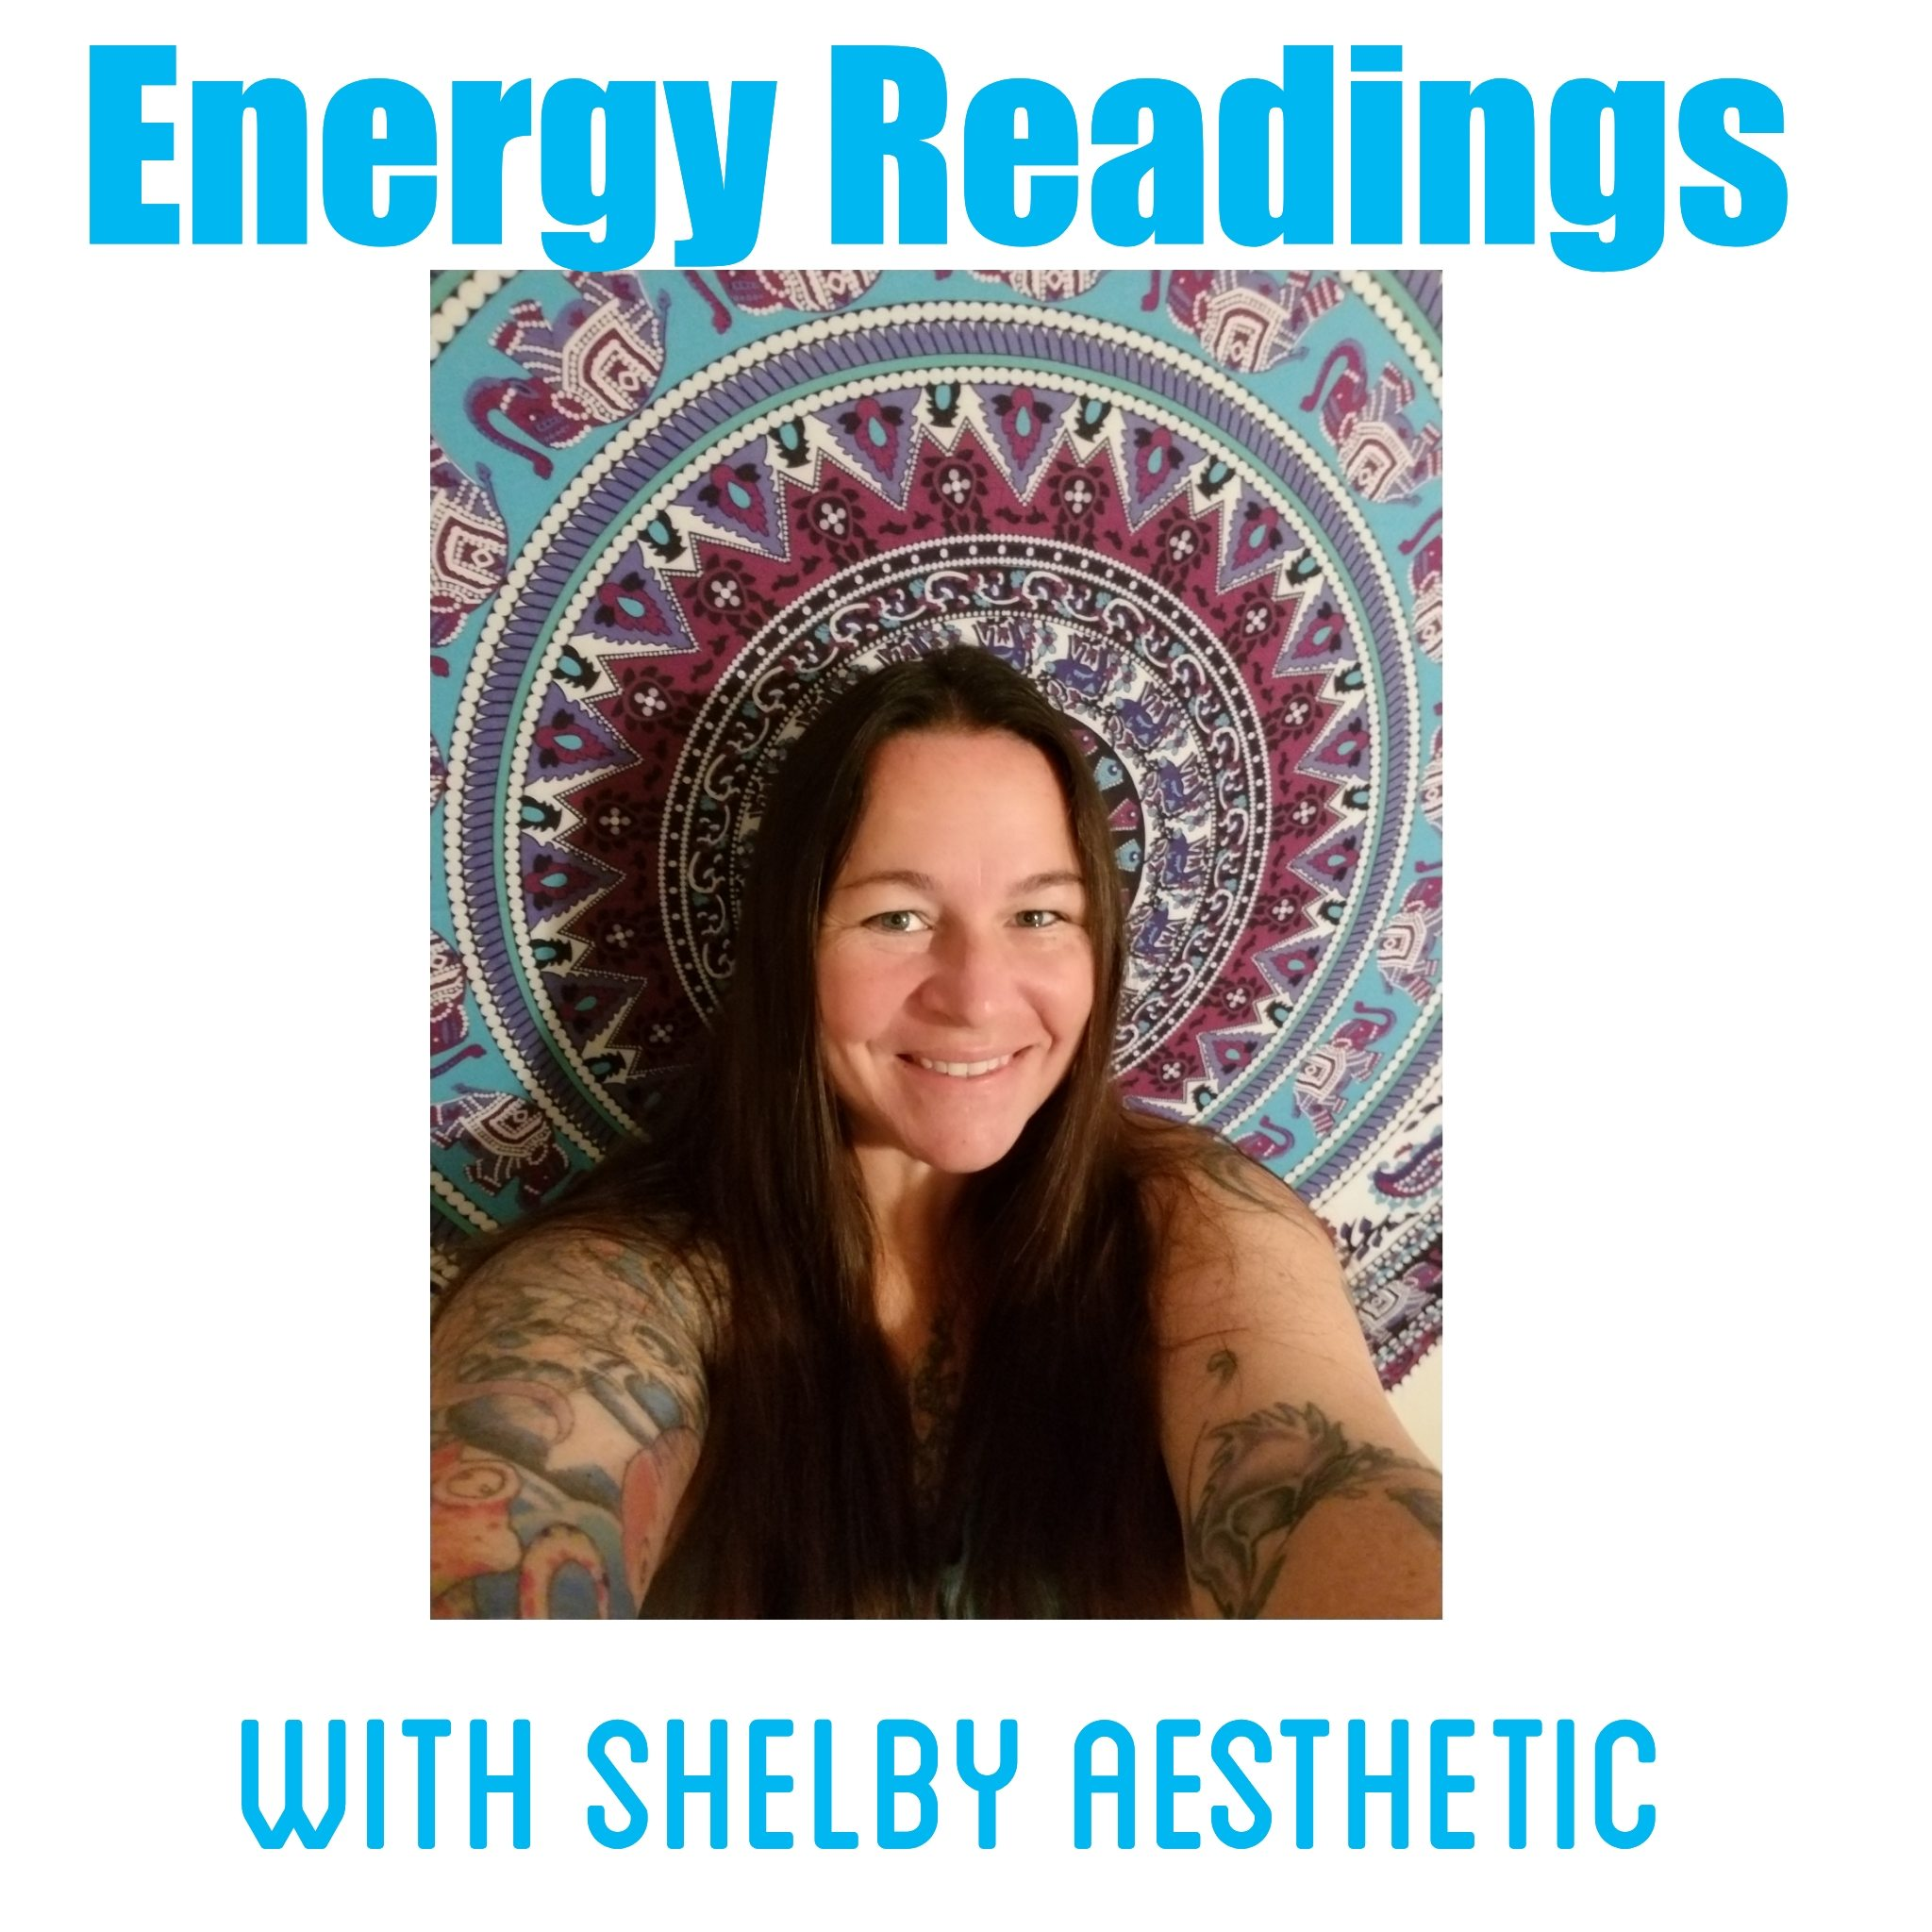 Energy Readings With Shelby Aesthetic